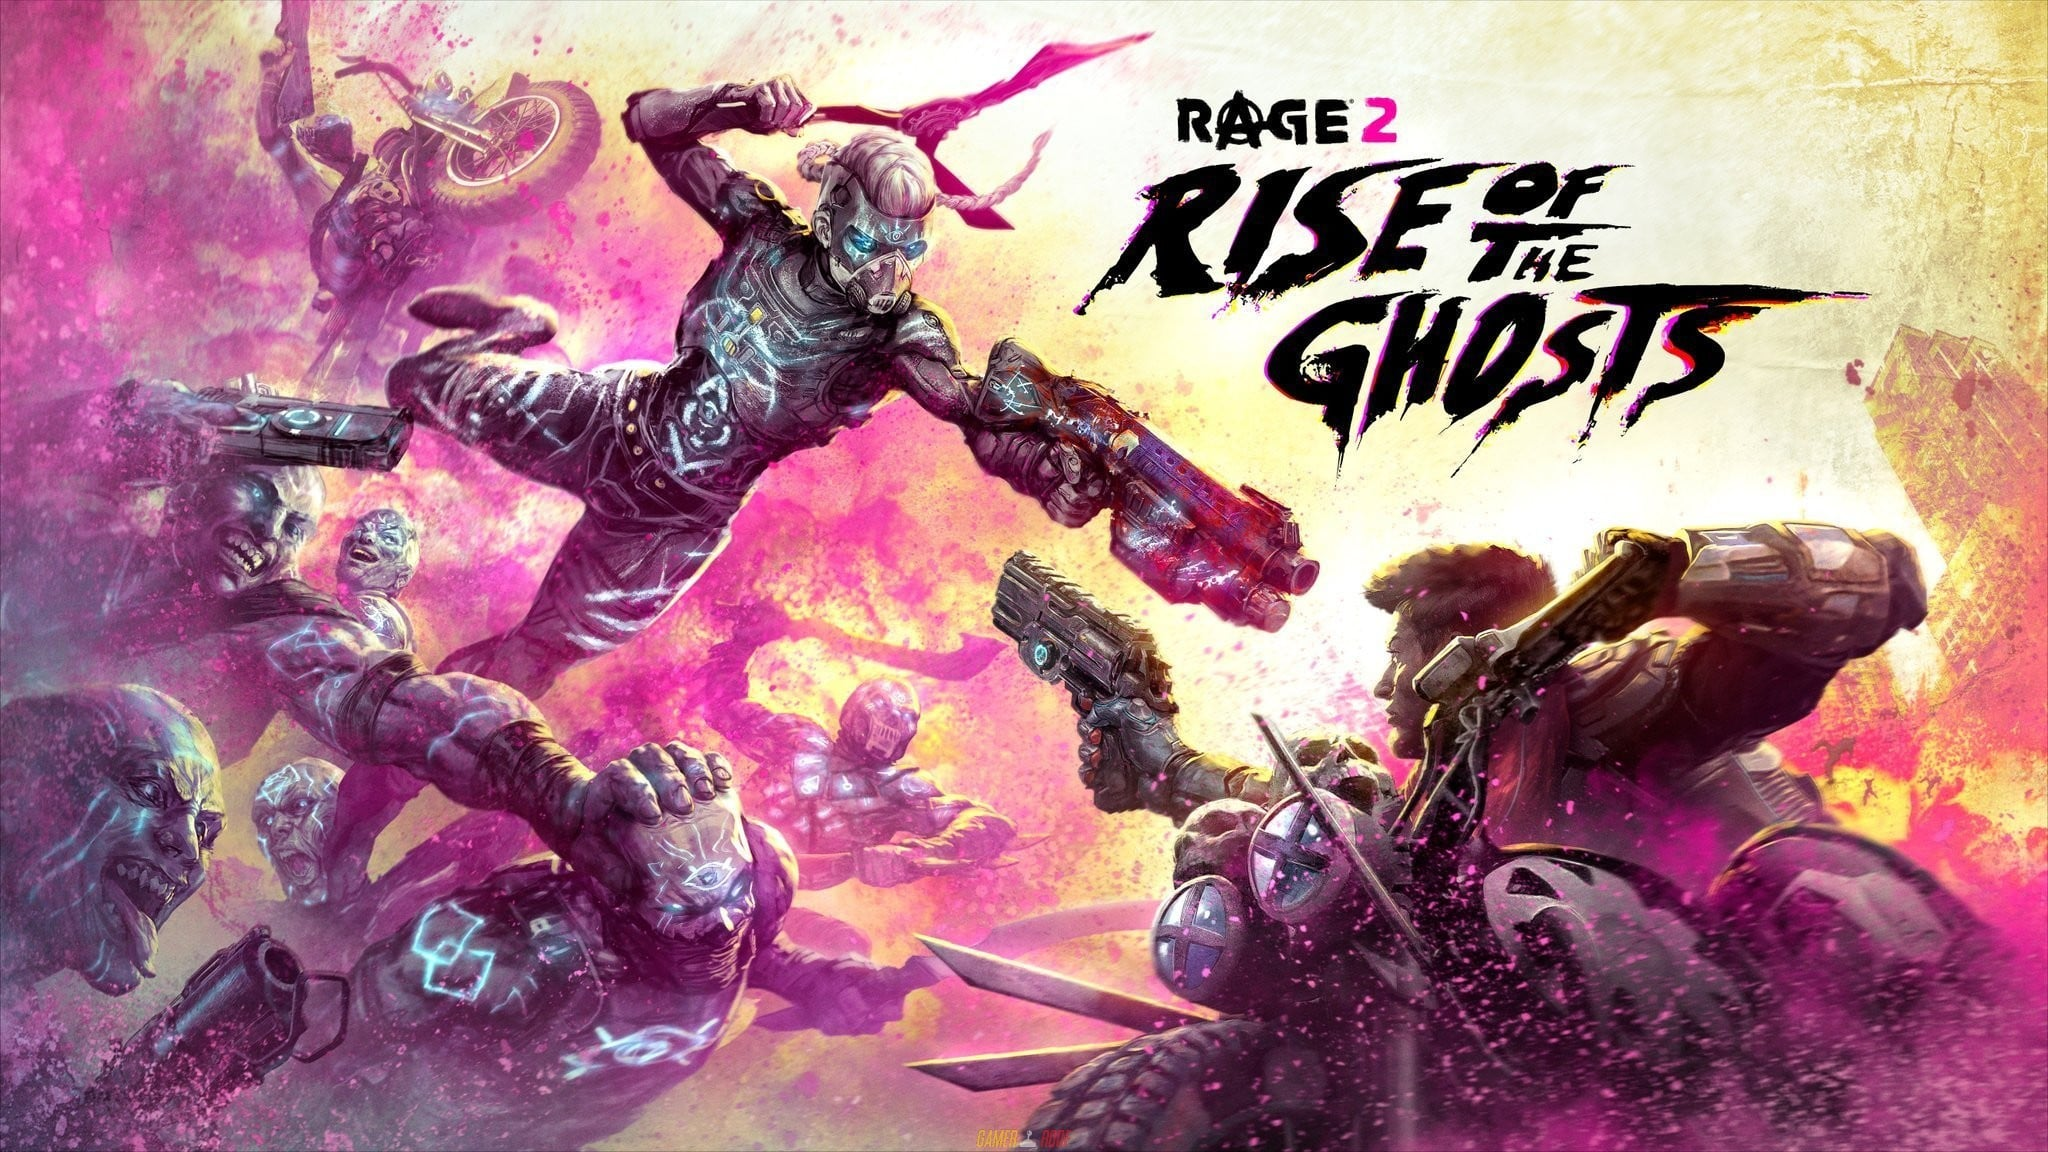 RAGE 2 Rise of the Ghosts PC Version Full Game Free Download